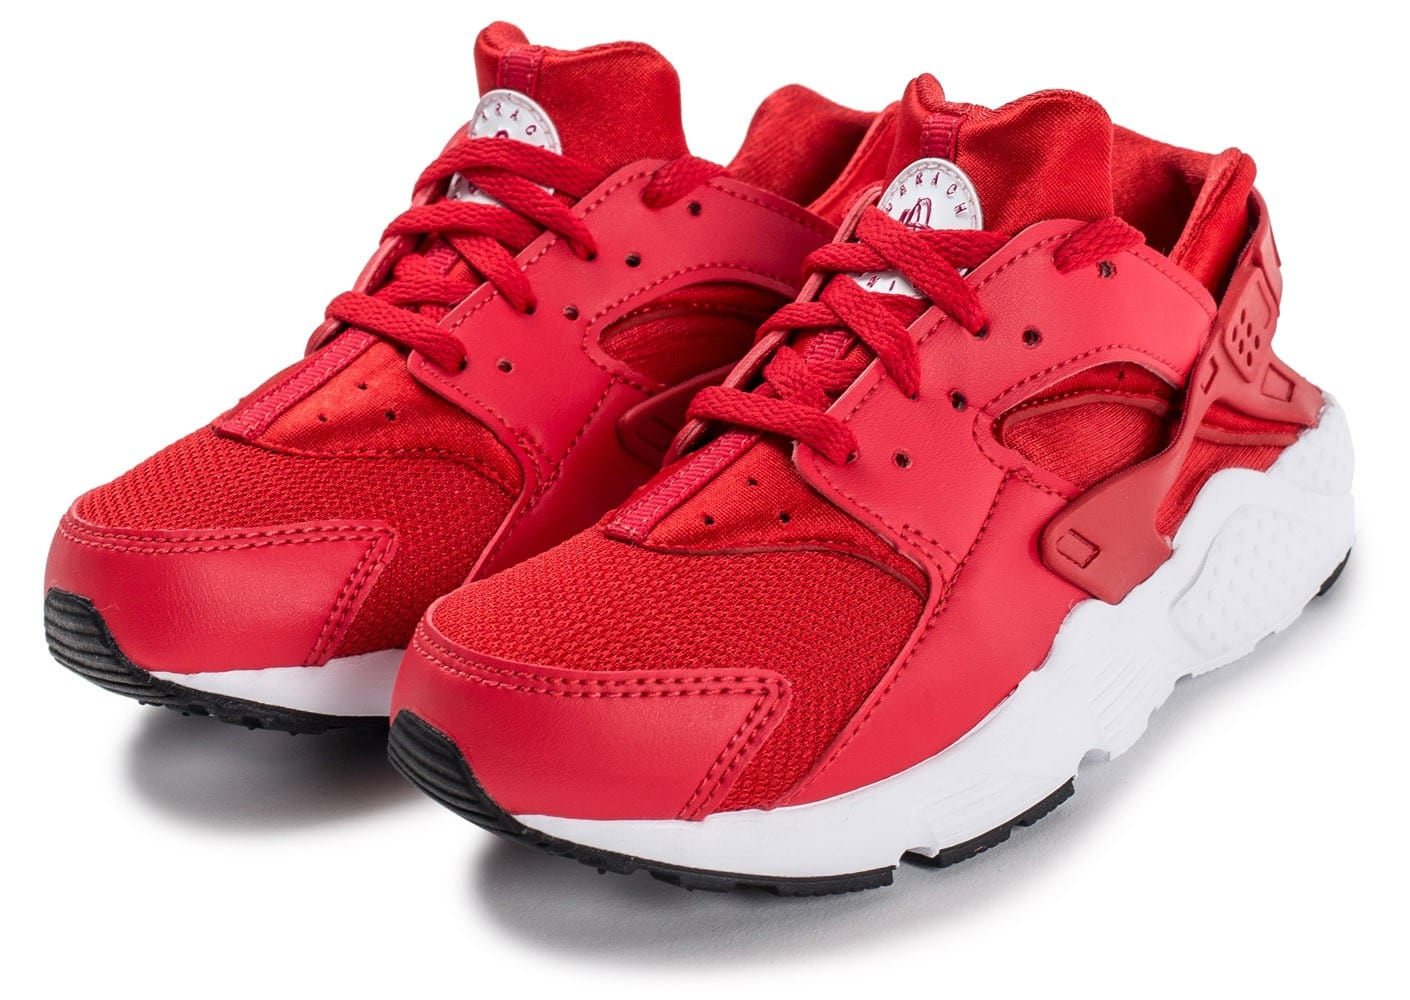 100% authentic 62978 e4dbc huarache nike rouge enfant SKU- Btar